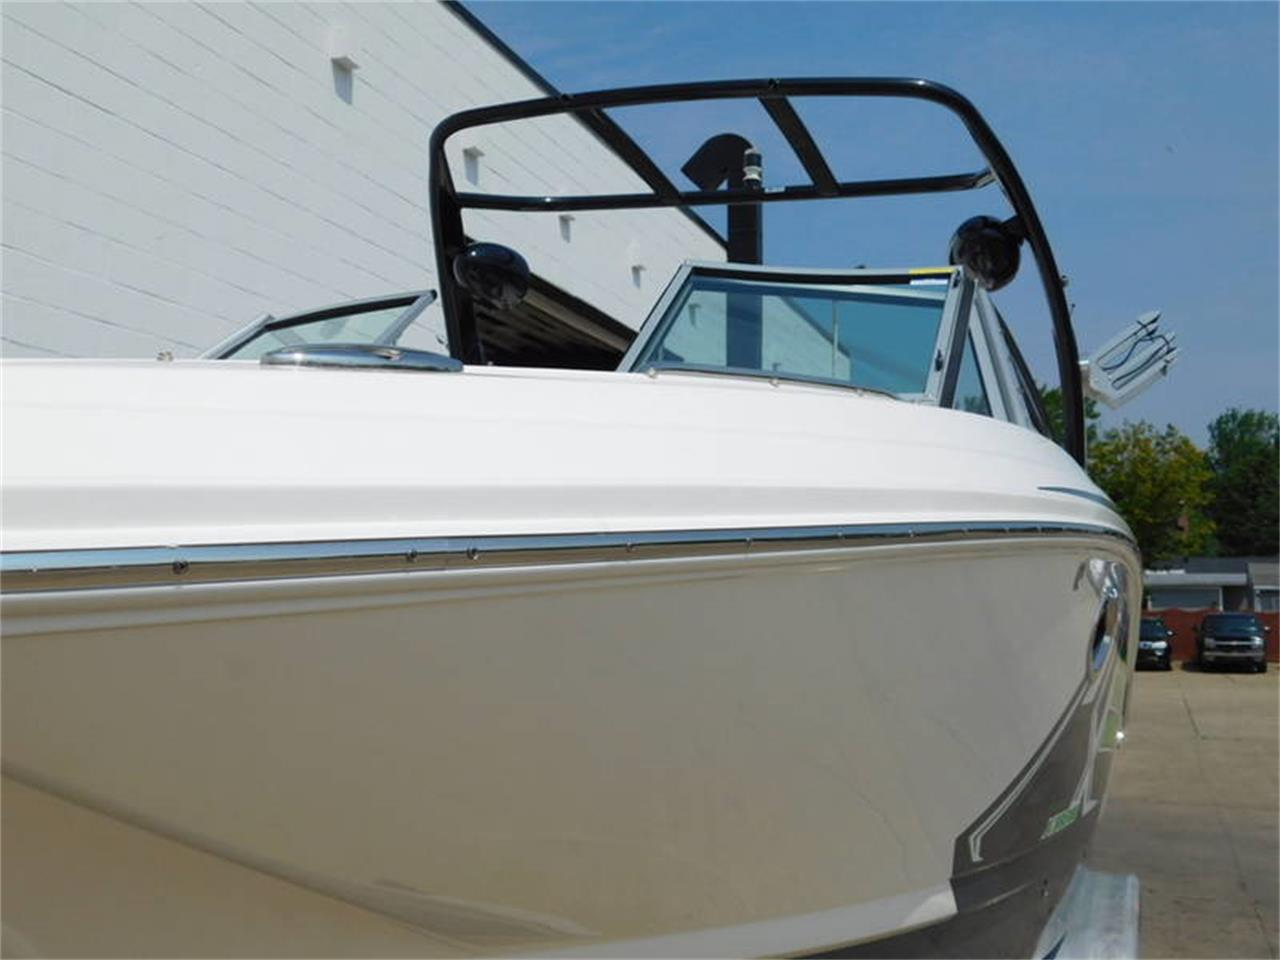 Large Picture of '14 Boat - NV3P